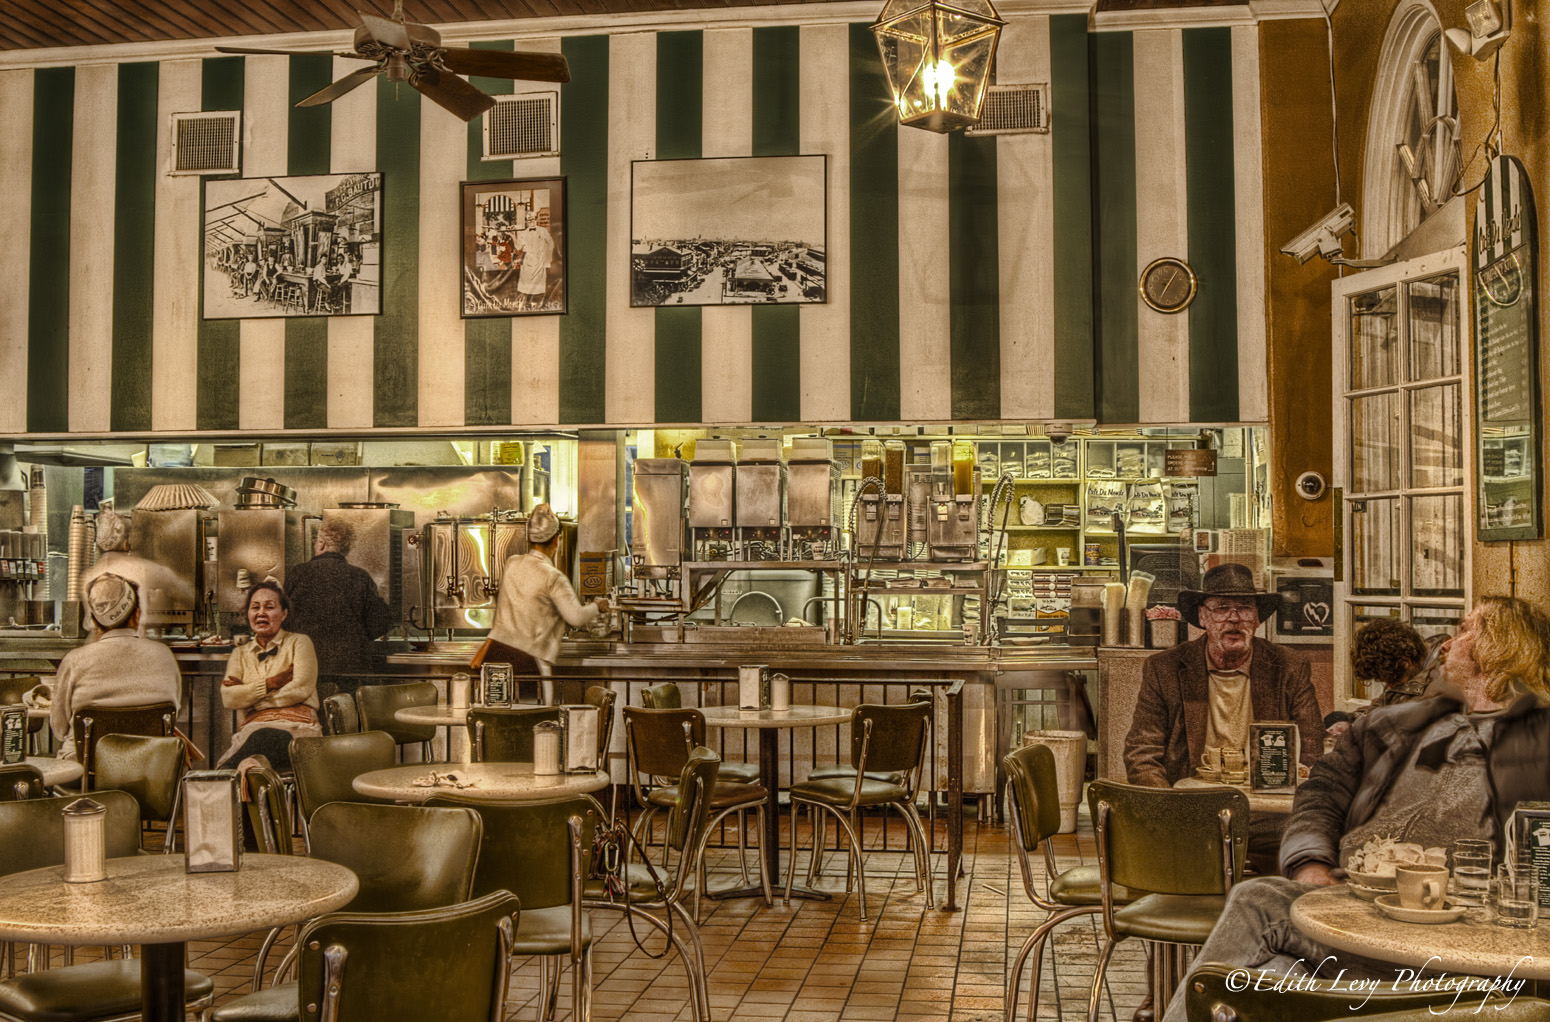 Cafe du monde, French quarter, New Orleans, Louisiana, coffee, beignet, hot chocolate, restaurant, photo